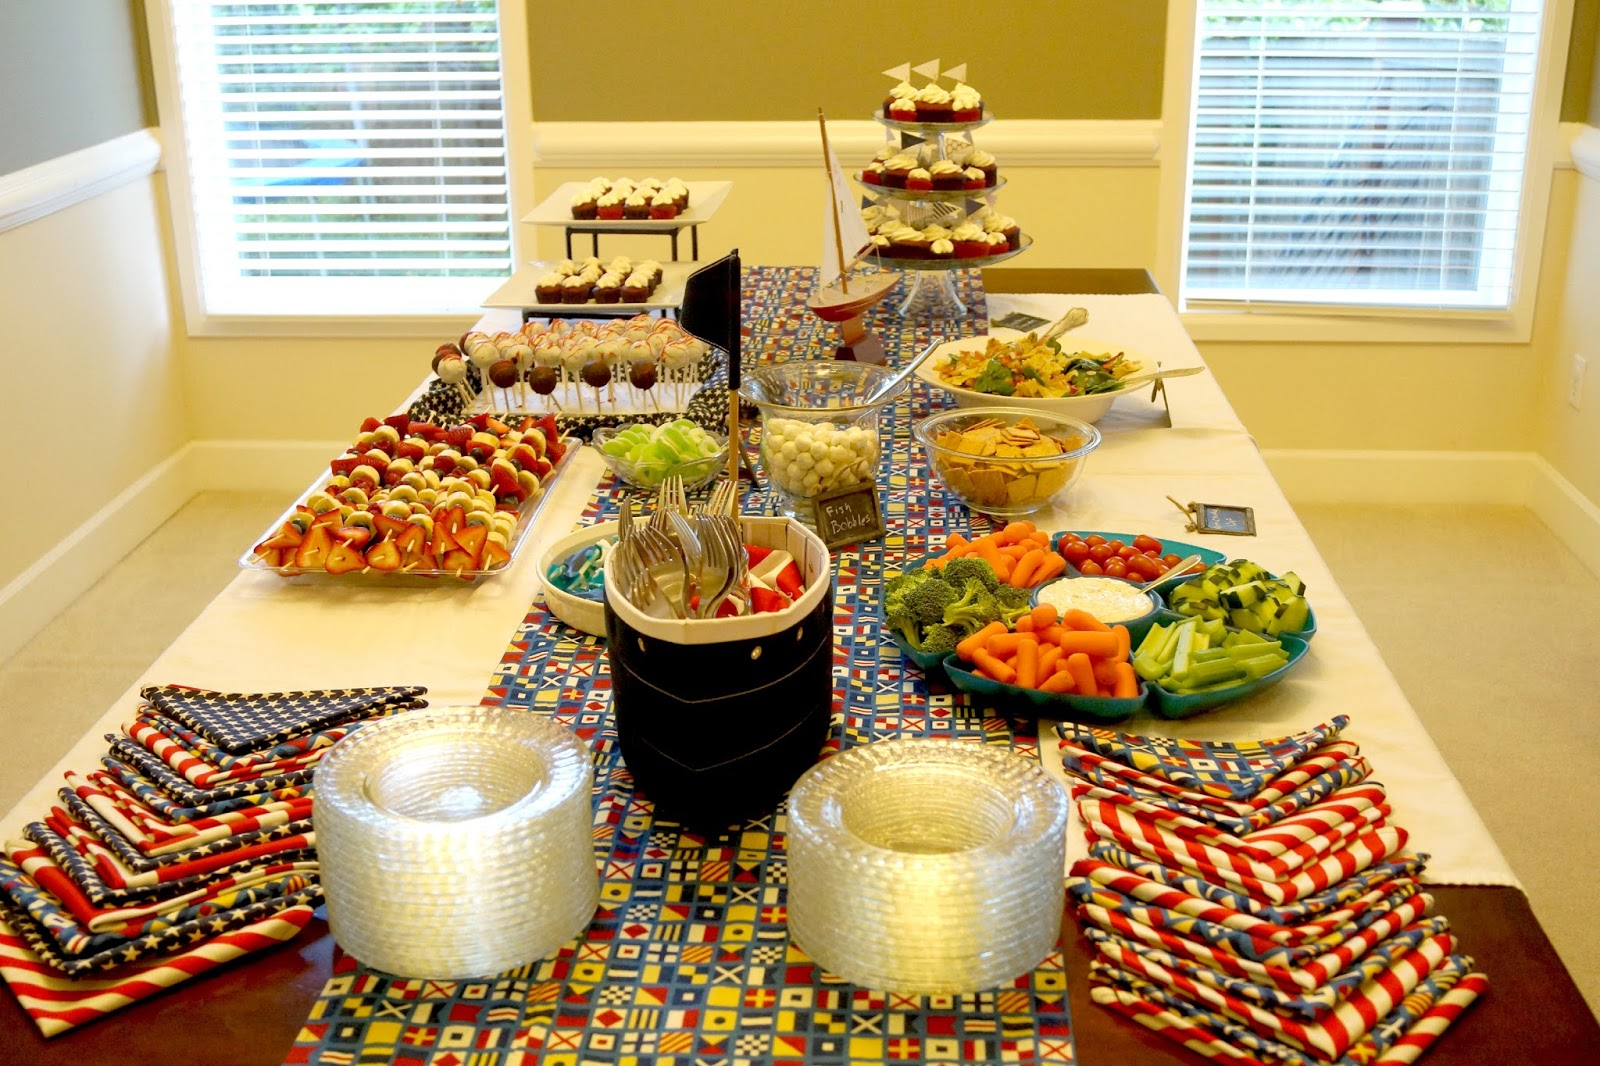 Marvelous Baby Shower Food Ideas On A Budget Whatu0027s A Baby Shower Without